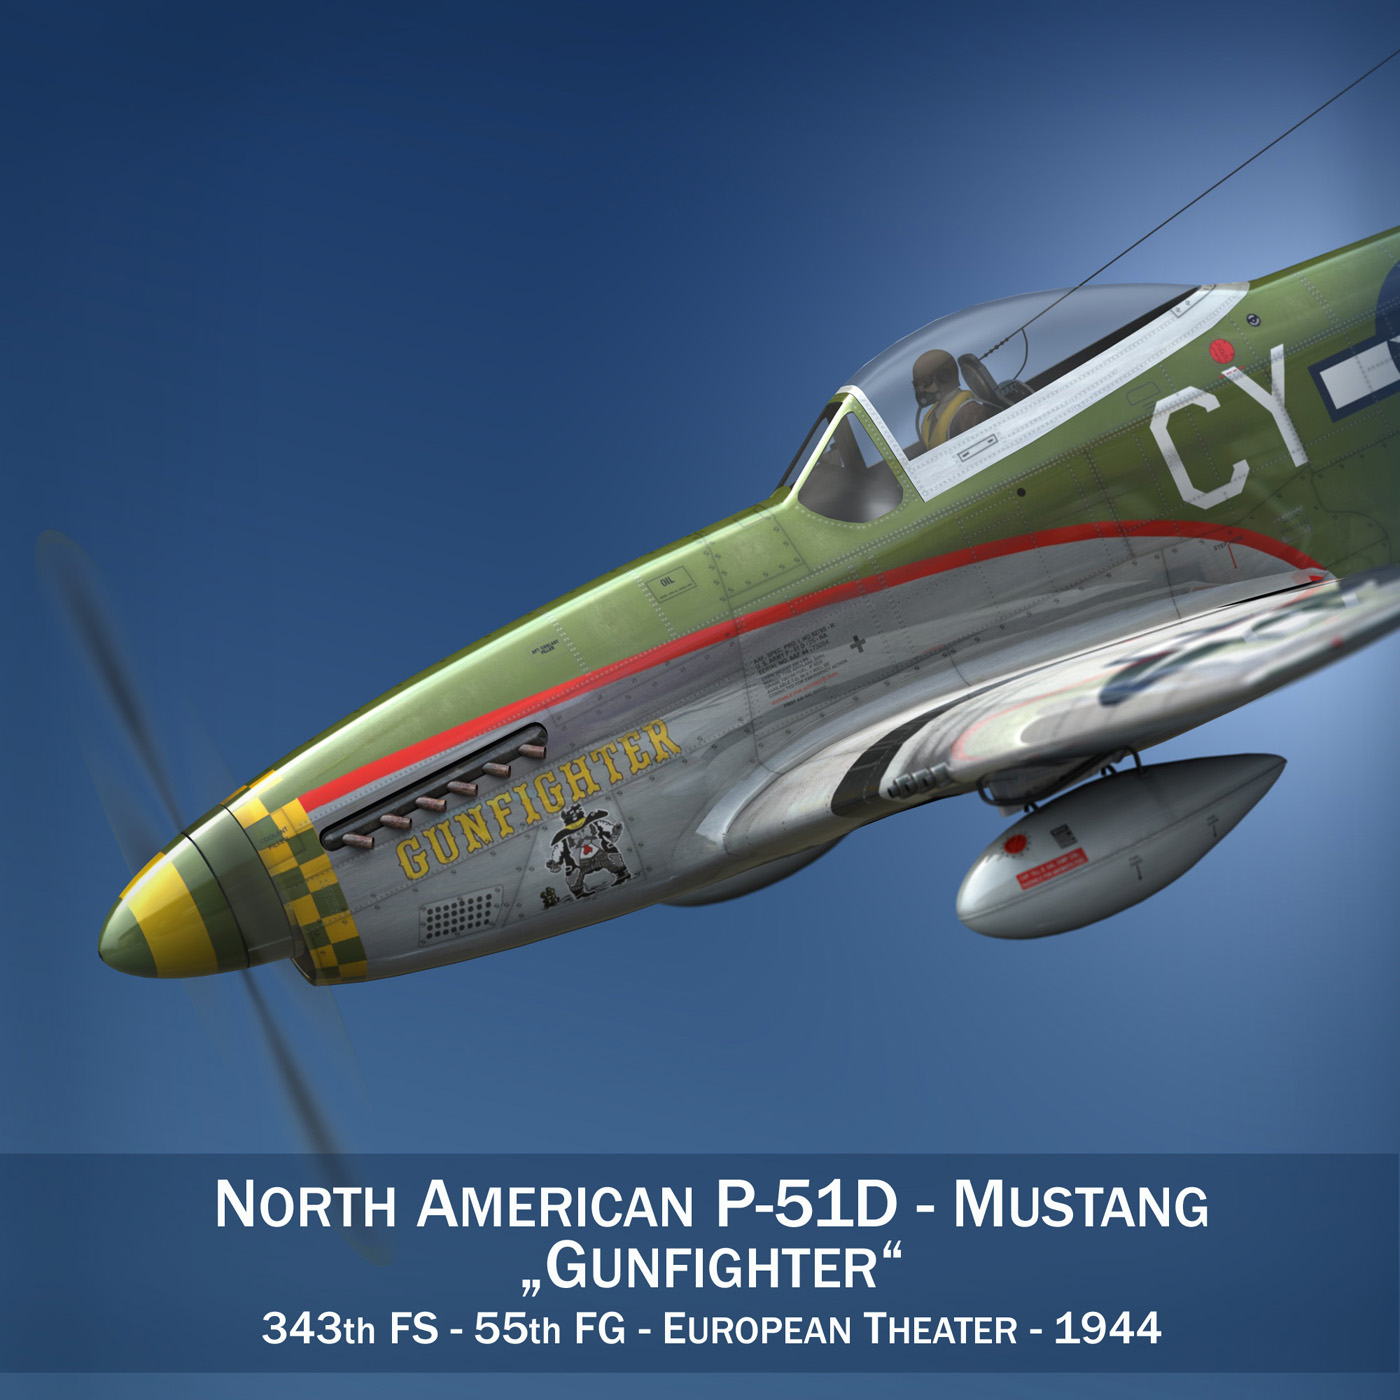 north american p-51d mustang – gunfighter 3d model fbx c4d lwo obj 269568